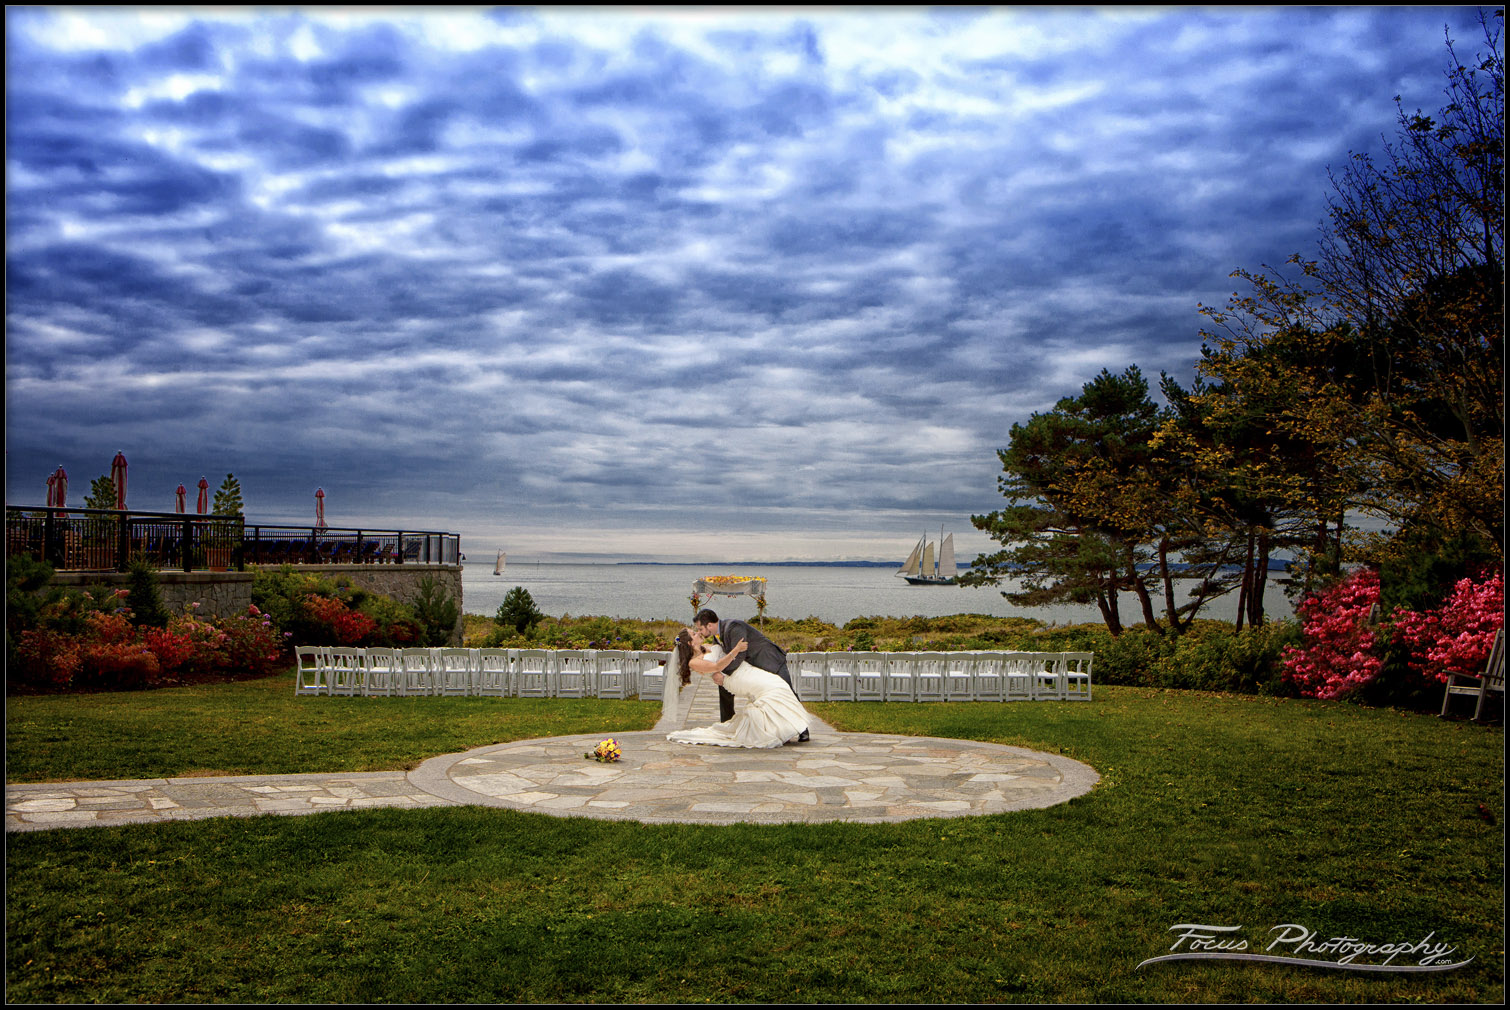 Wedding couple kiss at Colony Hotel in Maine - great sky and fall color